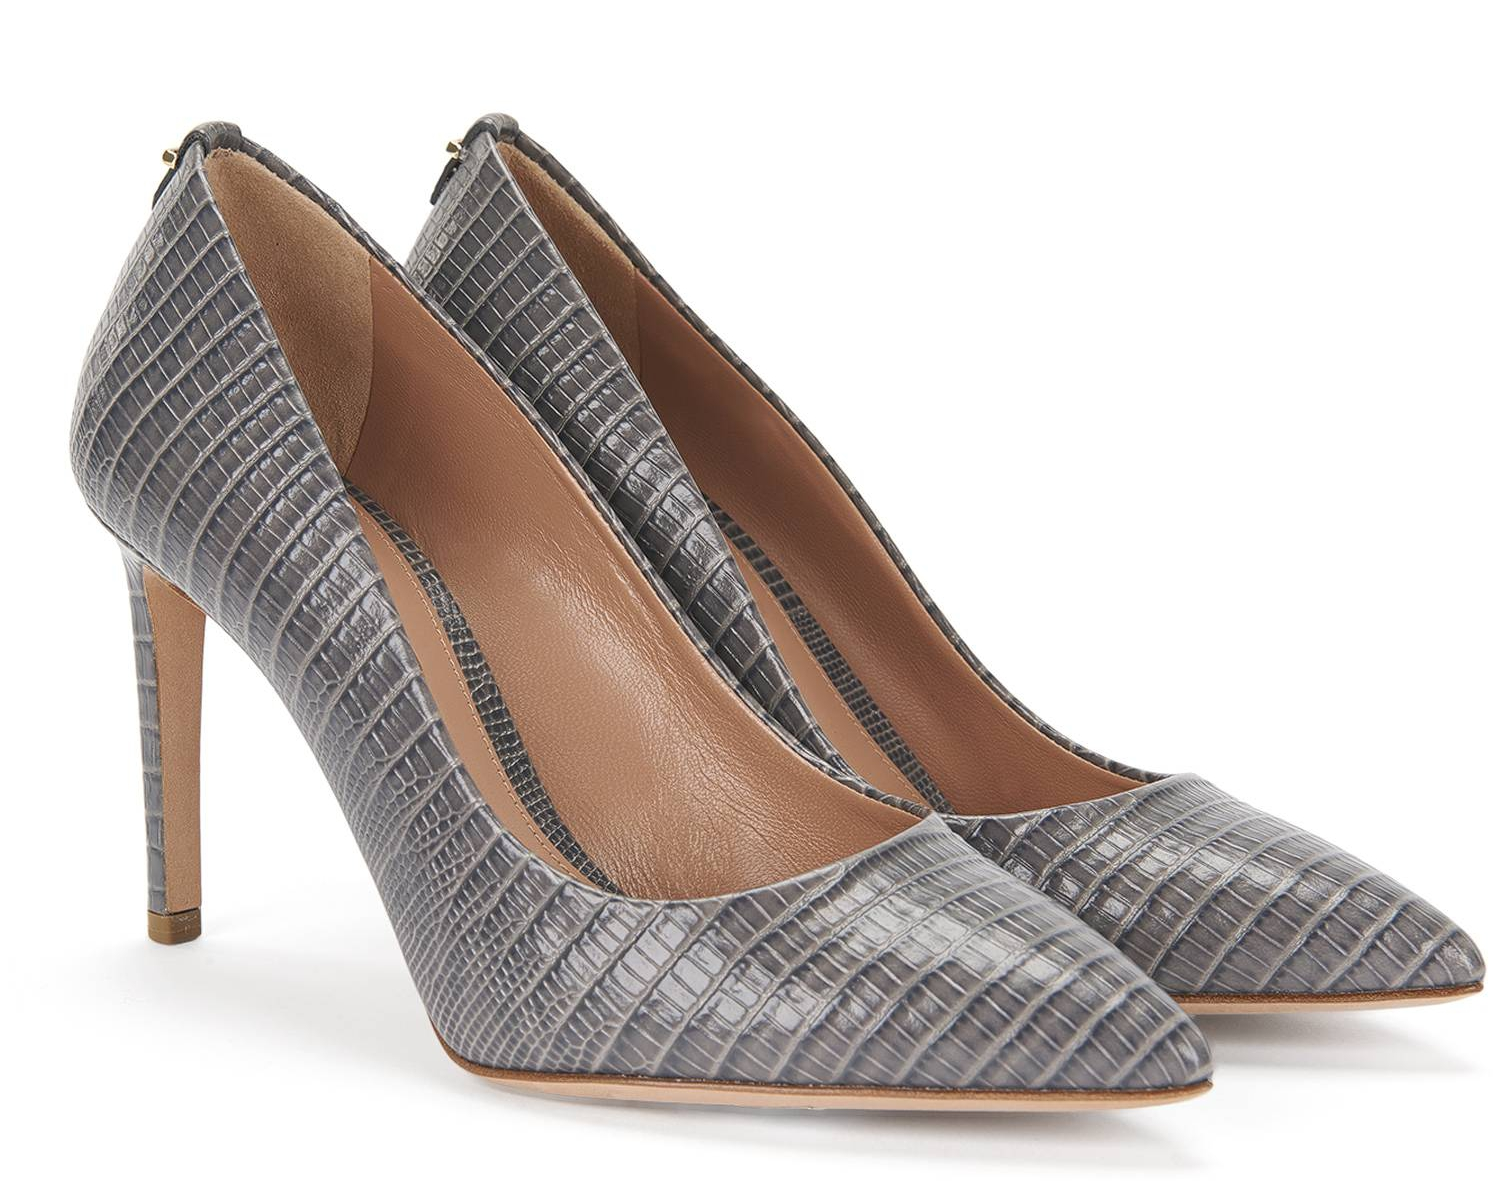 Hugo Boss 'Staple P90-L' embossed leather pumps in Anthracite (grey)